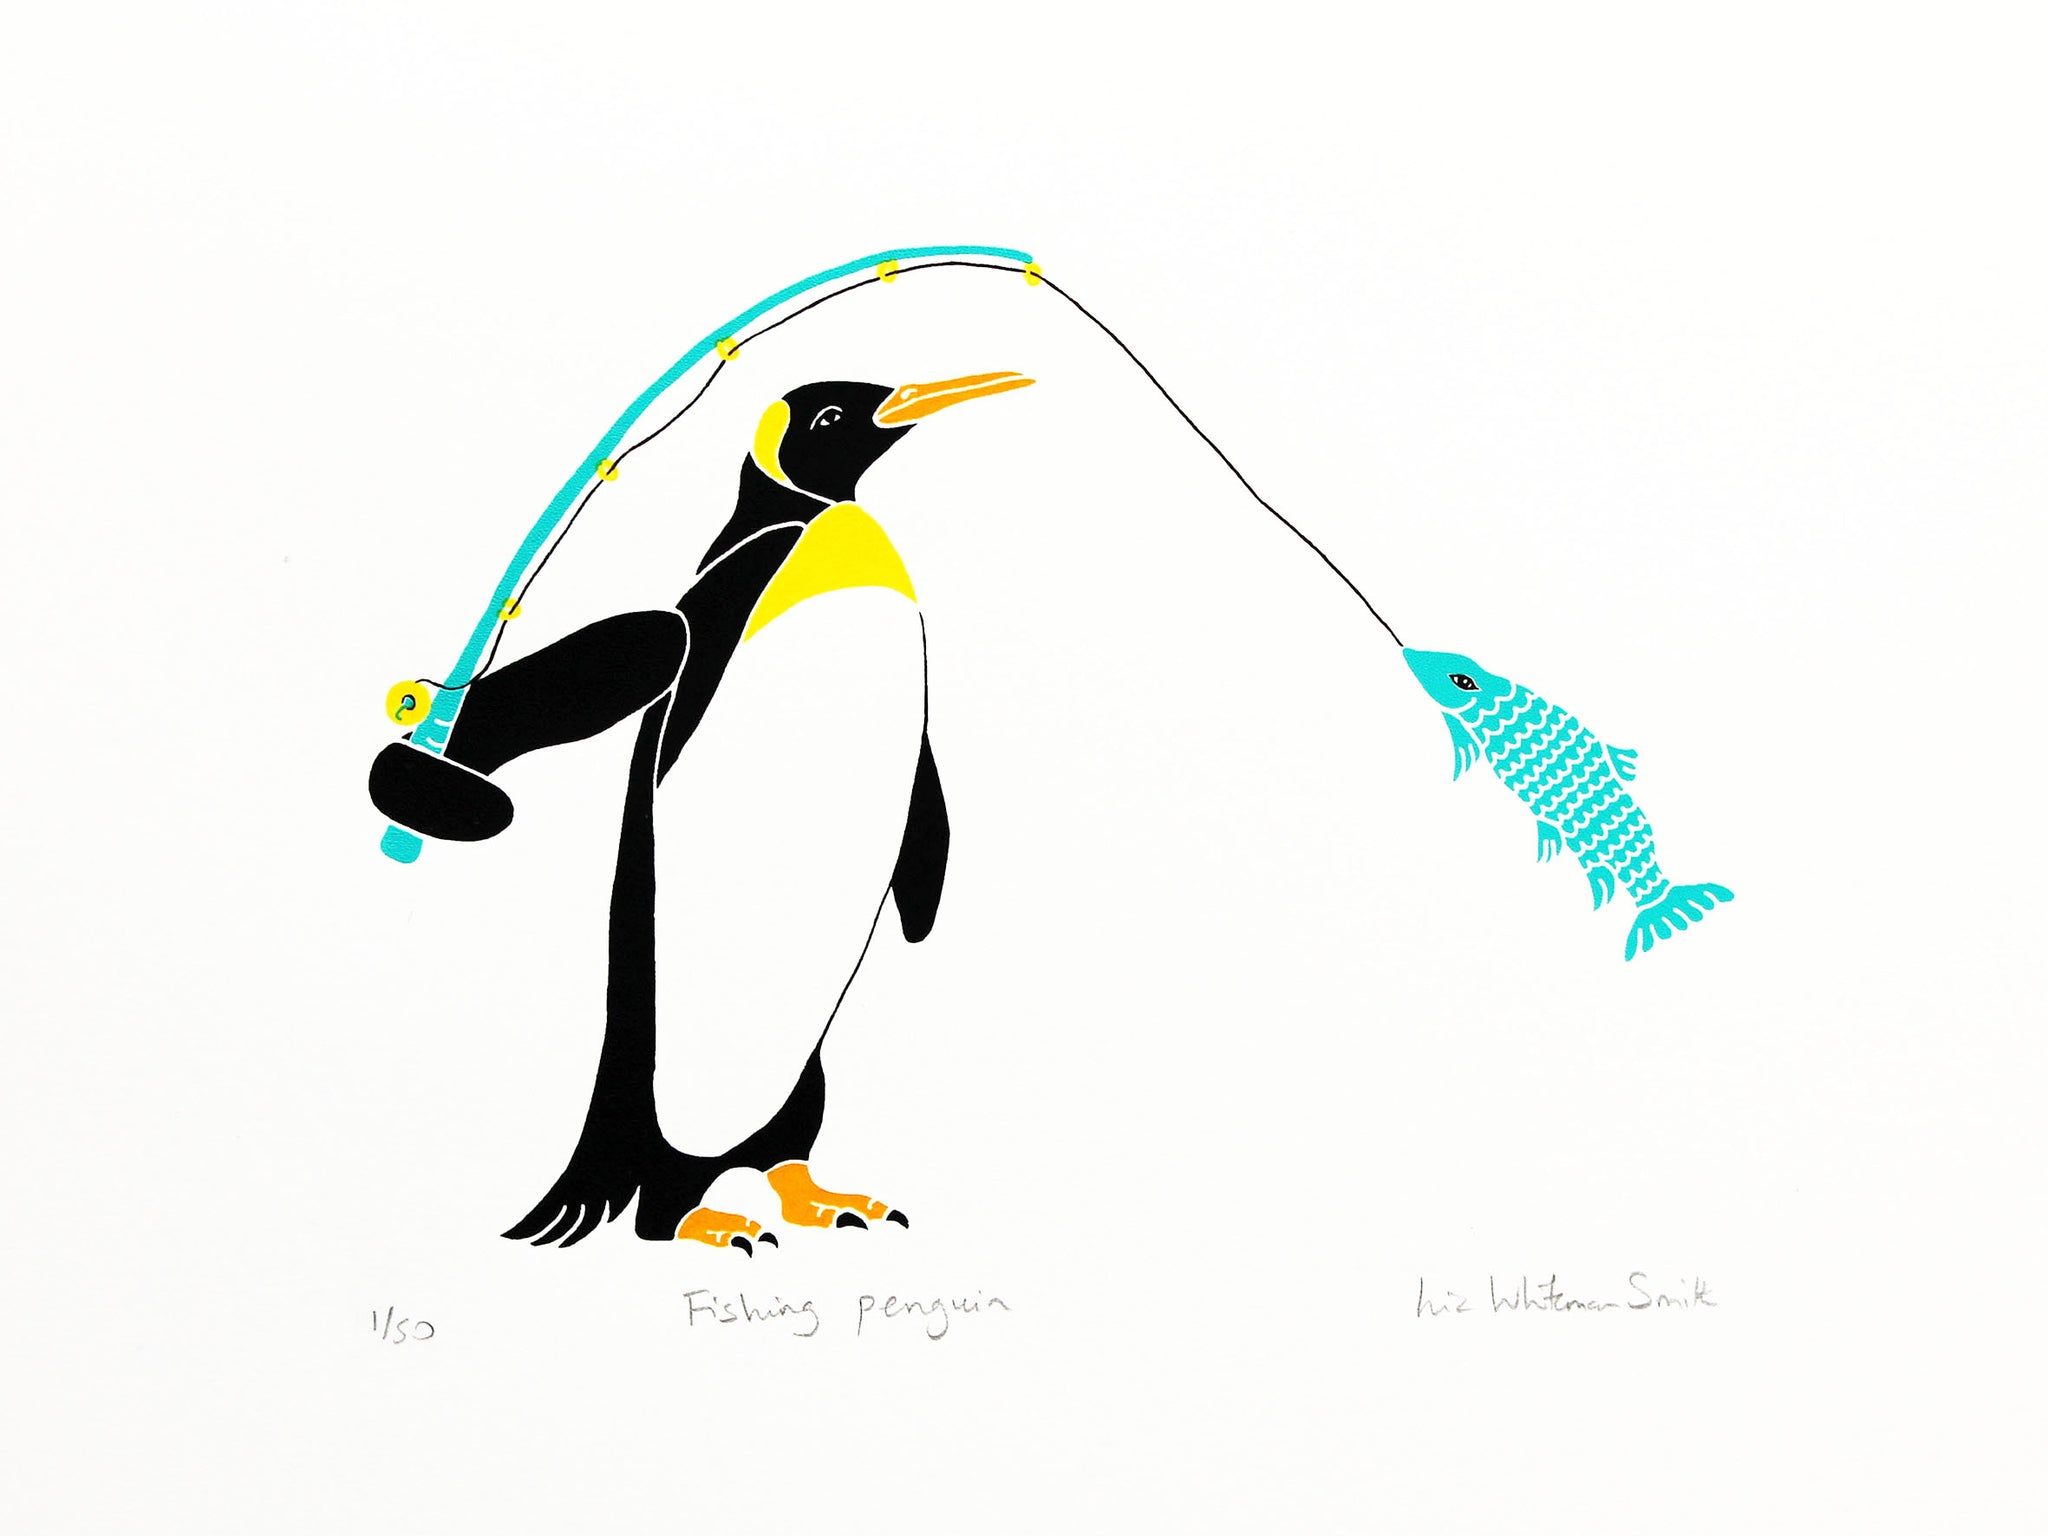 Fishing penguin